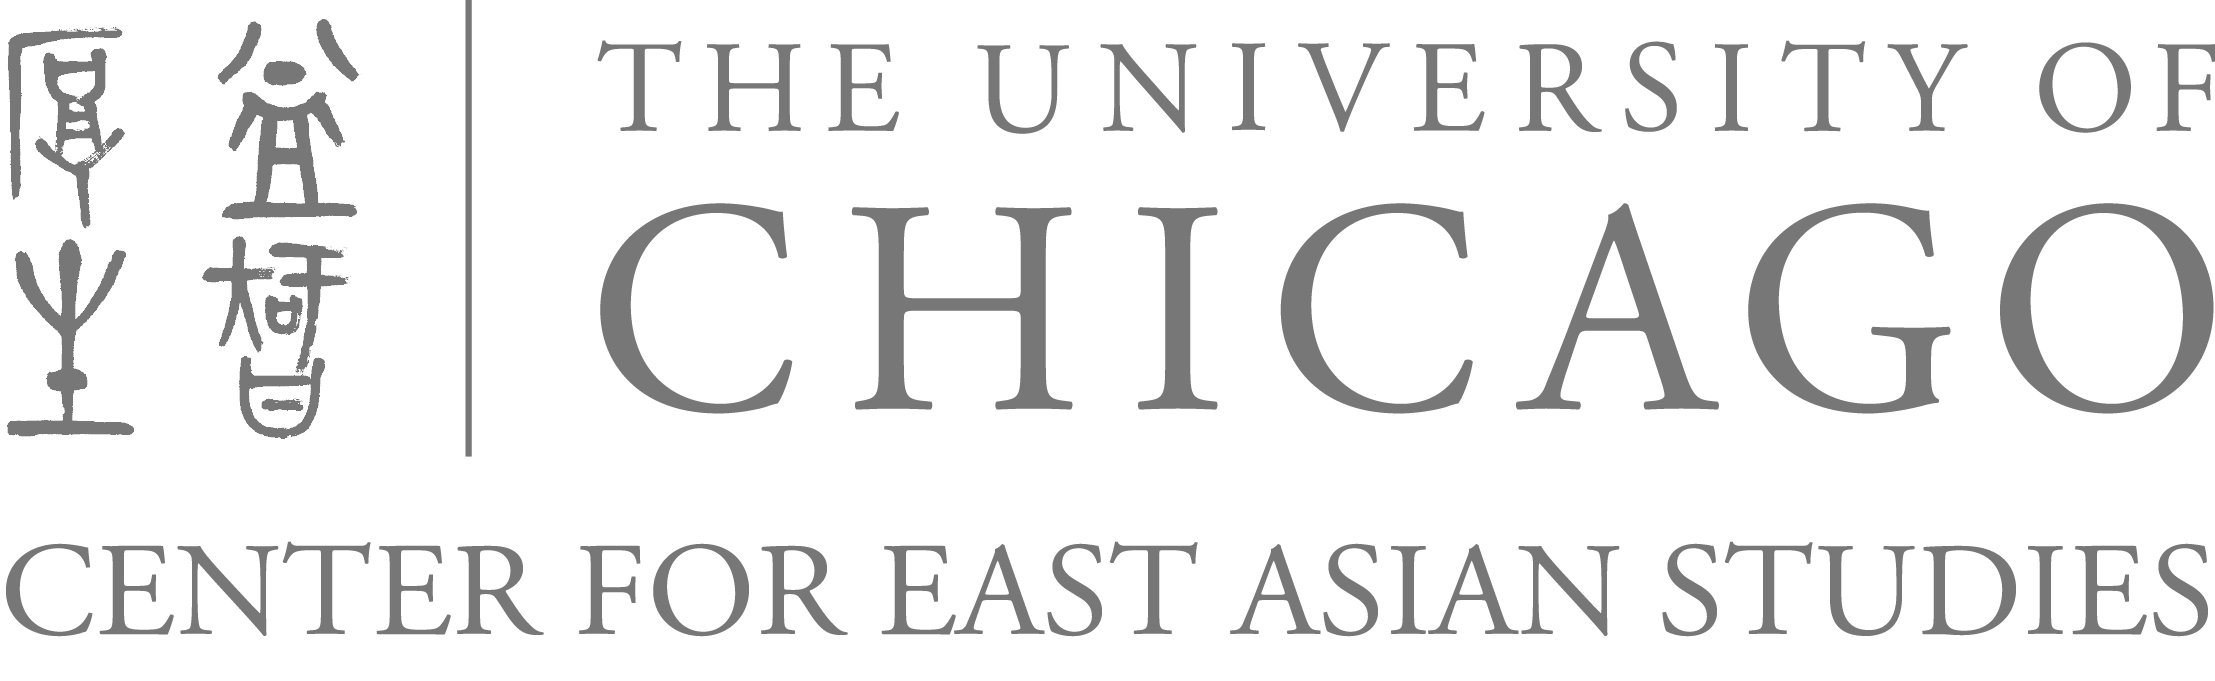 Center for East Asian Studies